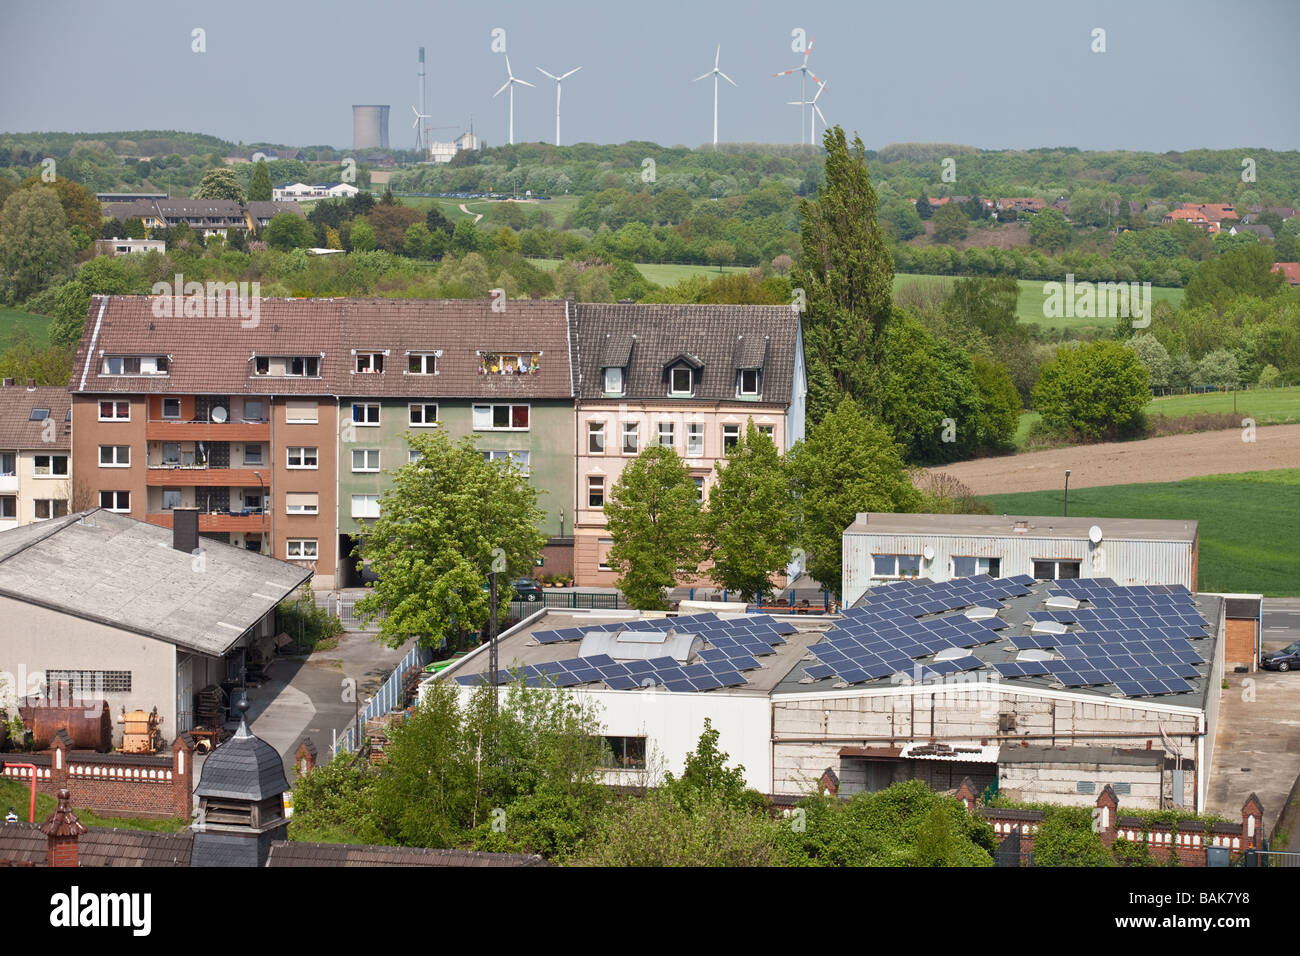 Landscape with wind turbines and solar batteries on roofs in Dortmund ,Germany. - Stock Image